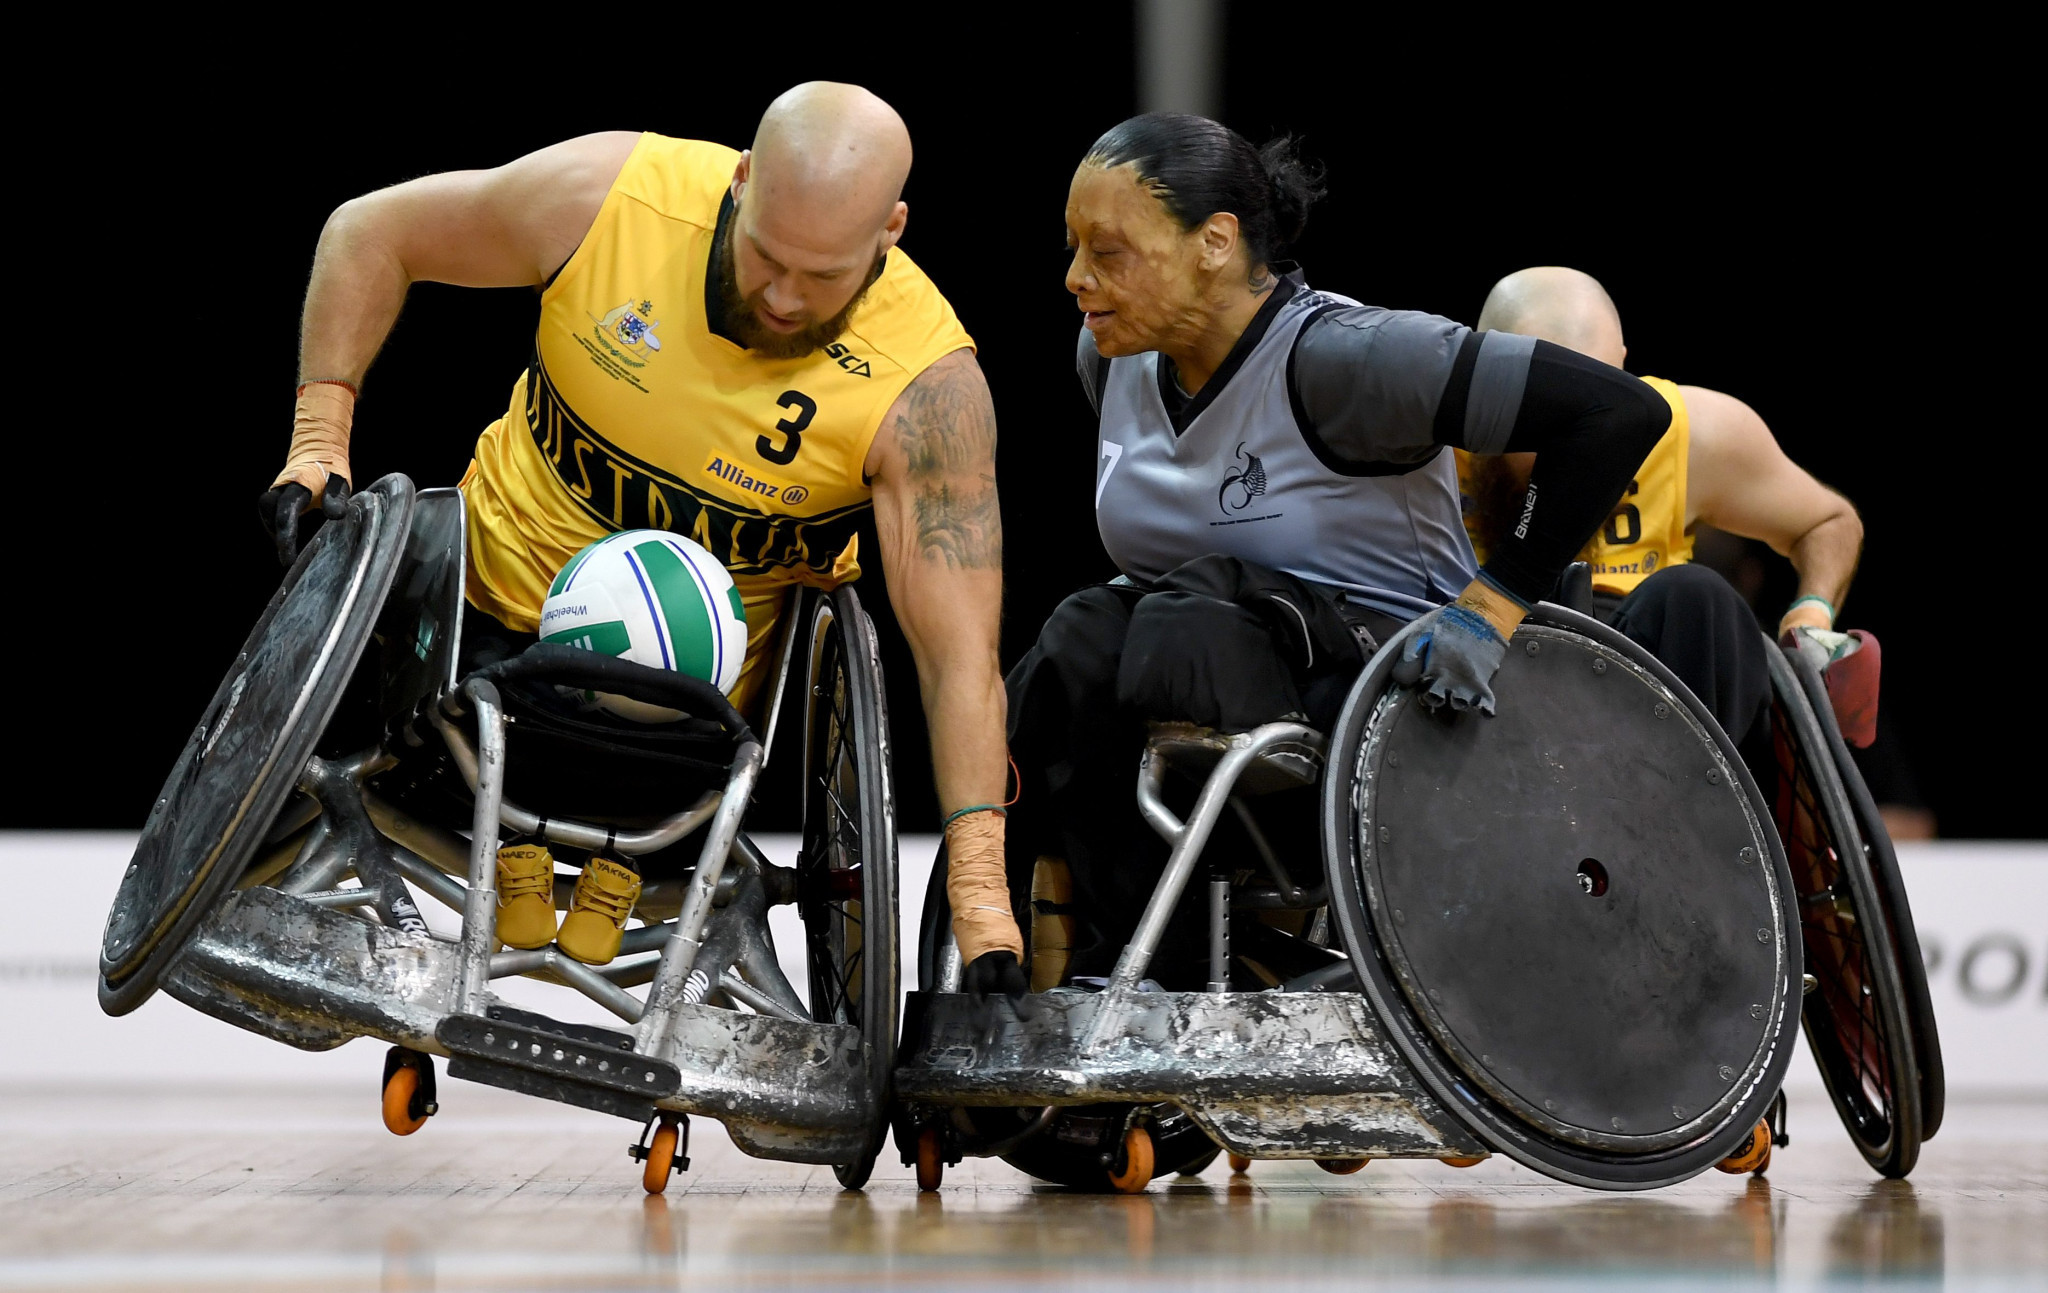 Hosts Australia open Wheelchair Rugby World Championship with fine win as France shock Canada